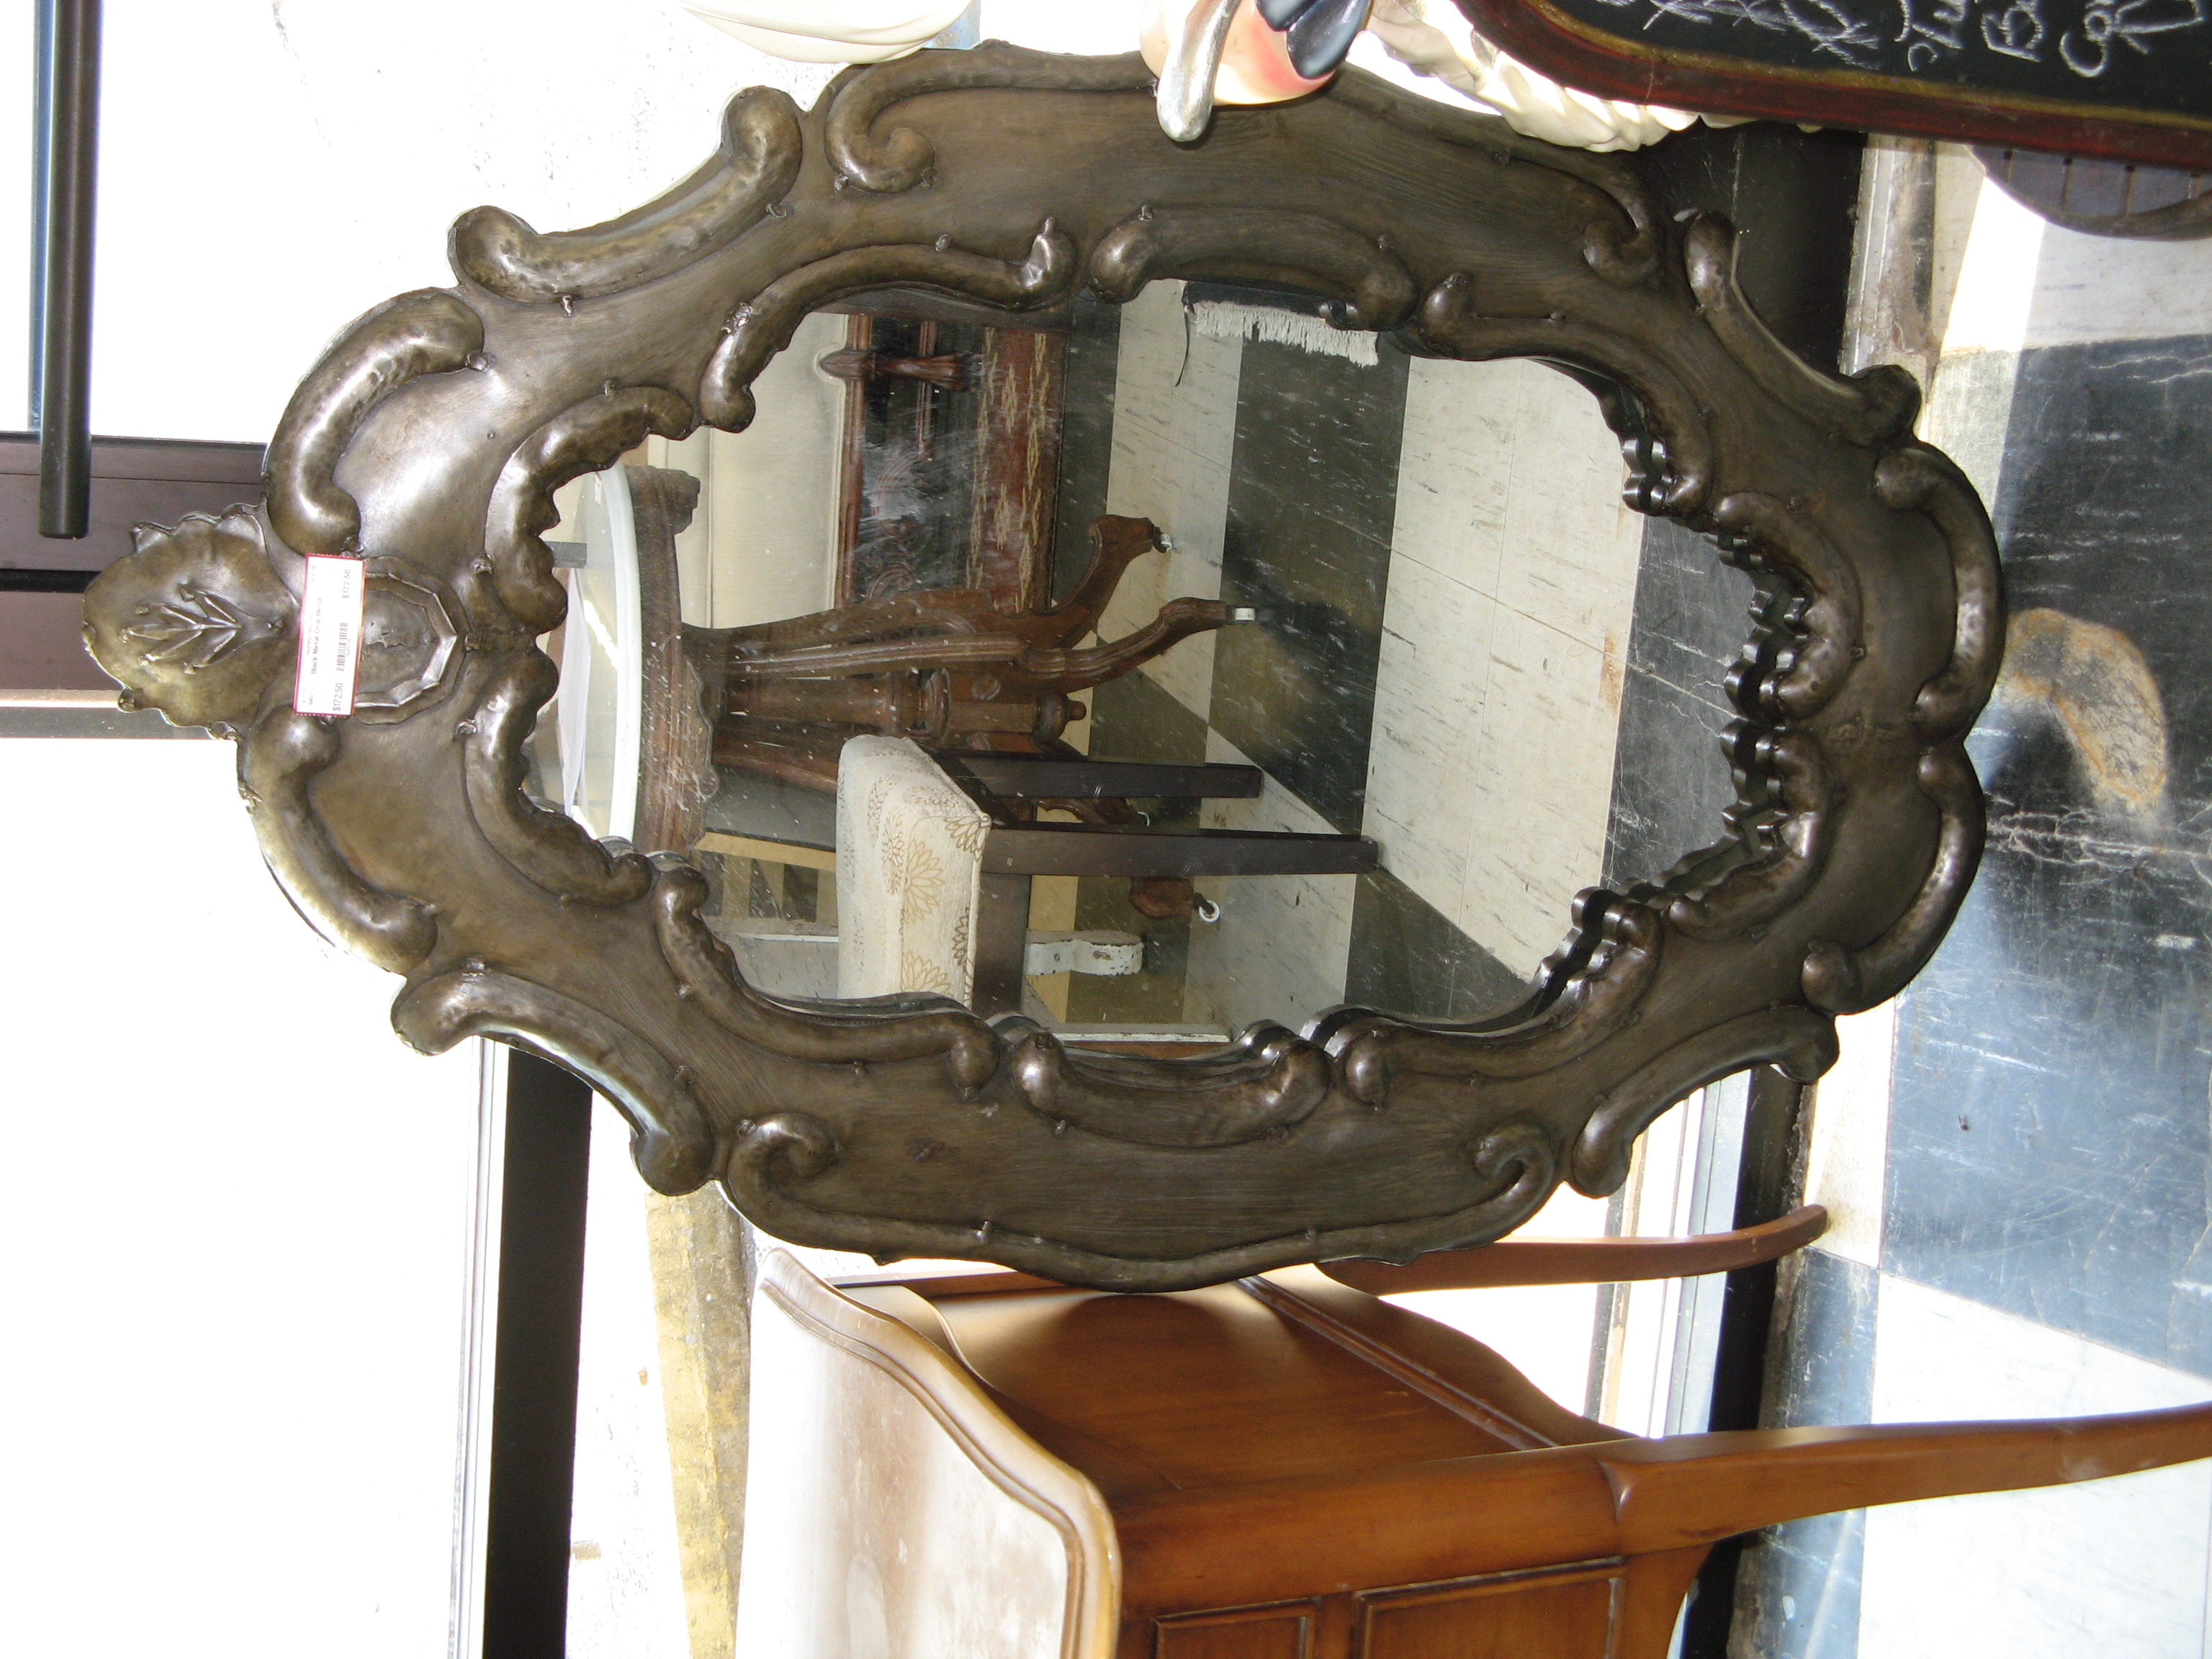 Black Metal Framed Oval Mirror with Flourishes, Art Nouveau